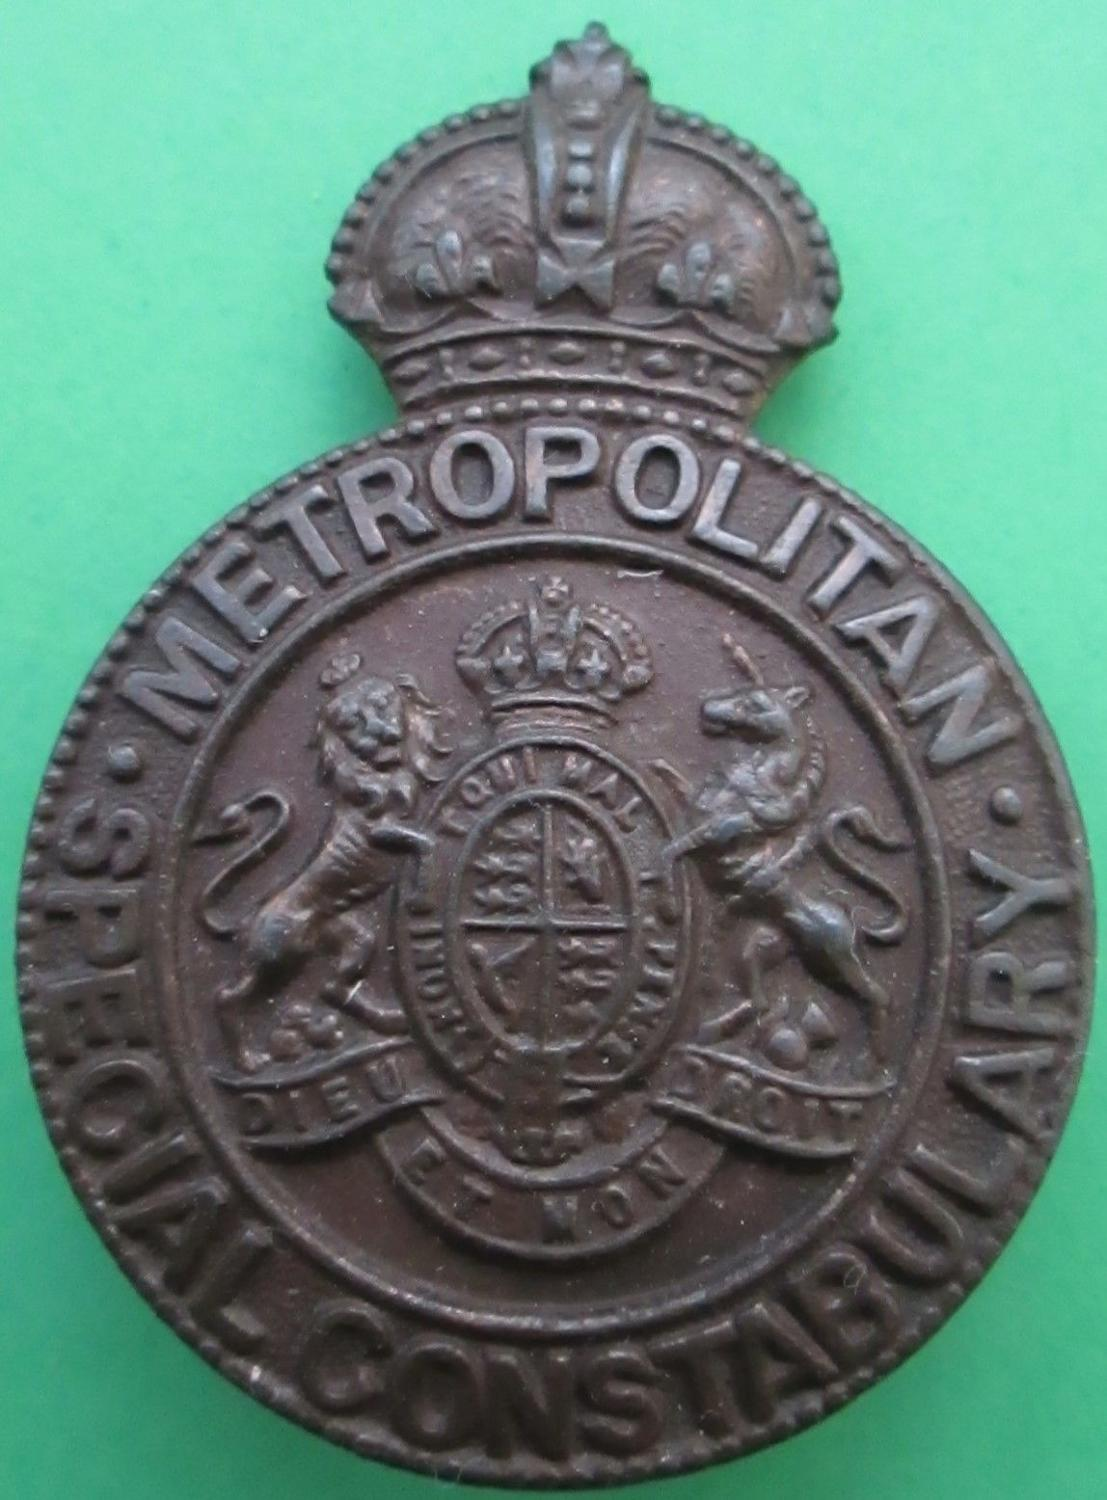 A BRONZE METROPOLITAN SPECIAL CONSTABULARY BADGE